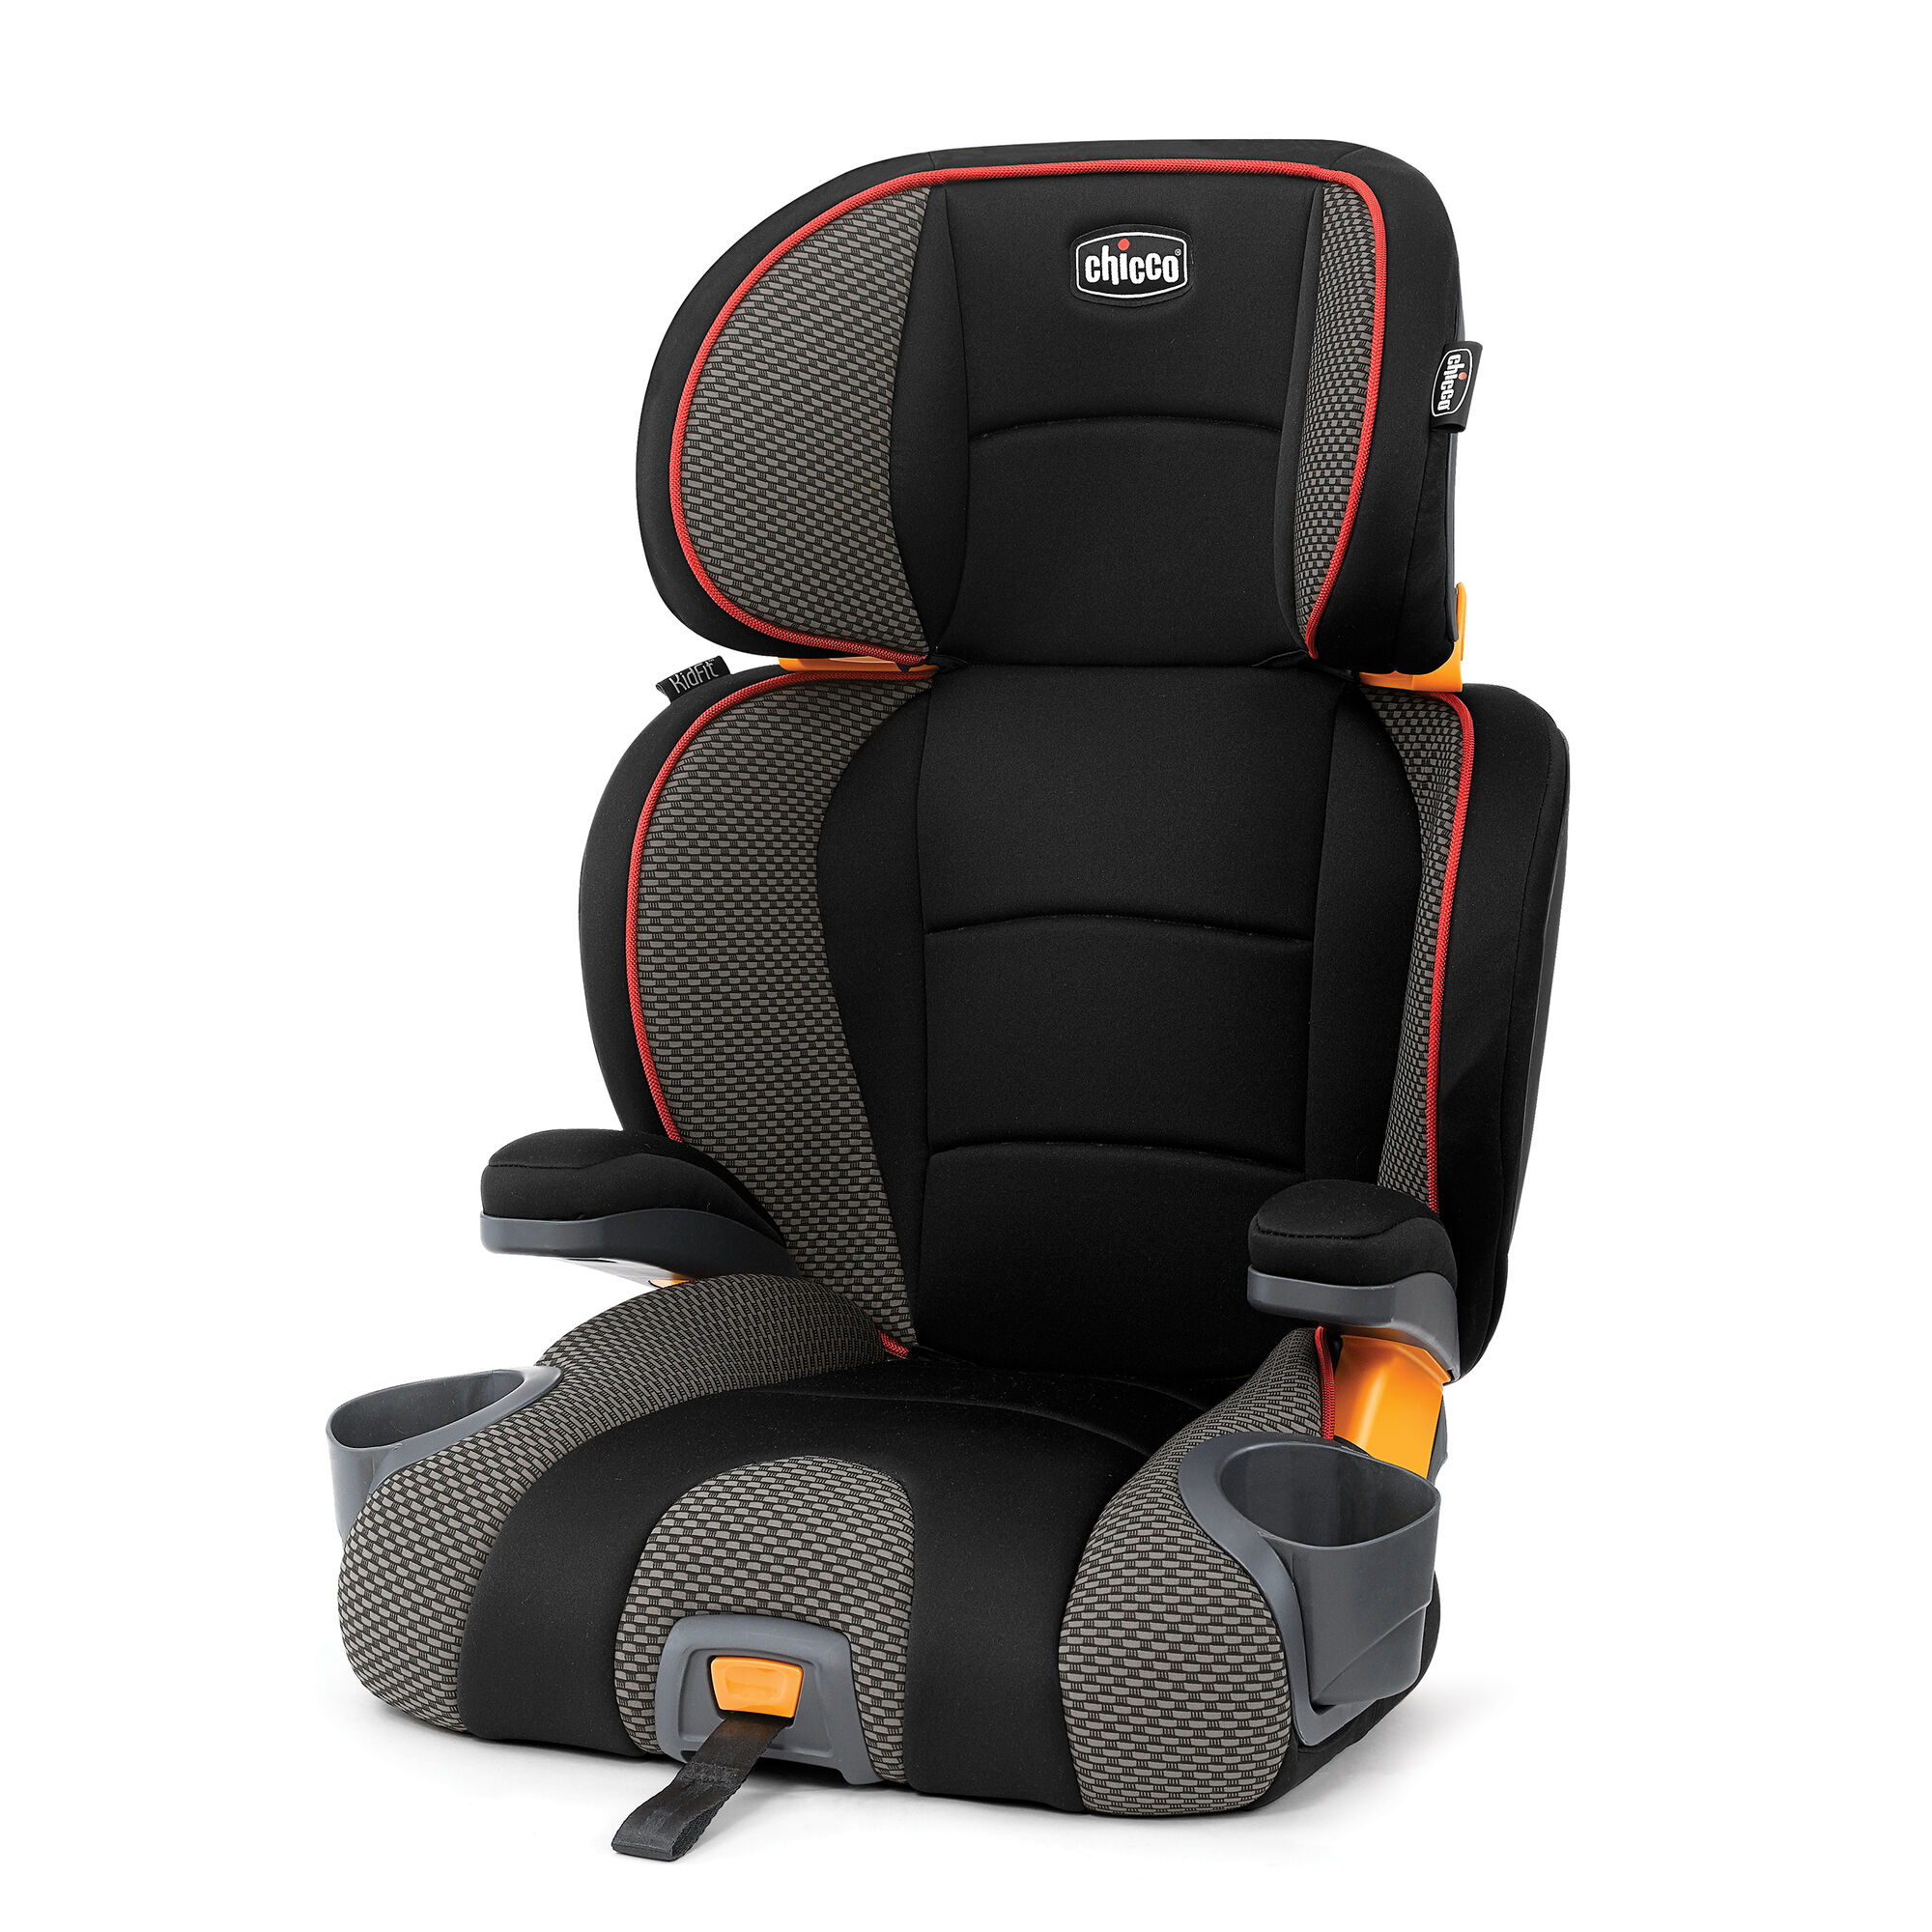 Vehicle Seats Product : Chicco kidfit in belt positioning booster car seat